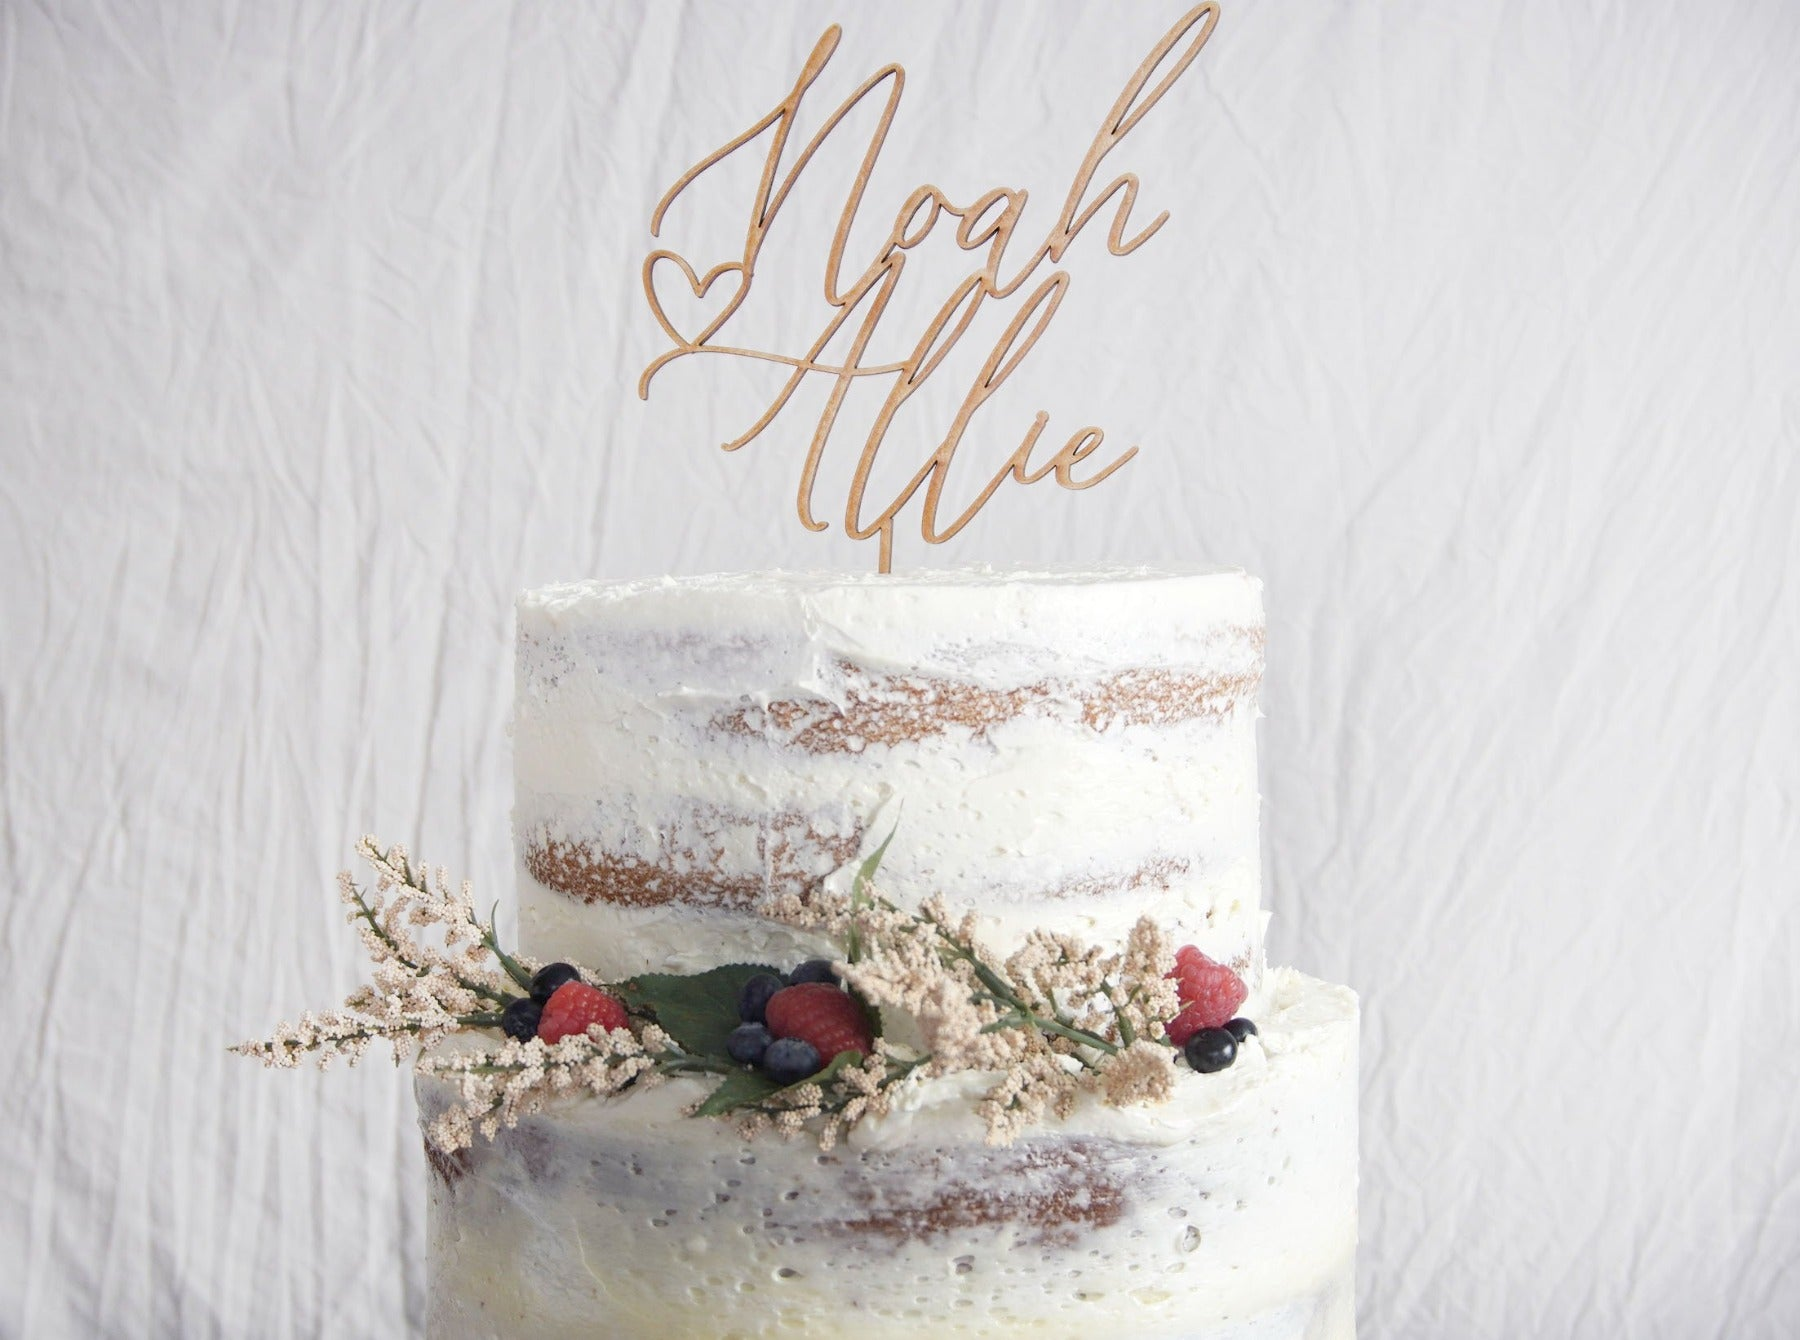 Rustic Couples Name Wedding Cake Topper | Calligraphy Script | Personalized Anniversary Topper | Gold, Silver, & Rose Gold Wood Gift, Cake Toppers, designLEE Studio, designLEE Studio